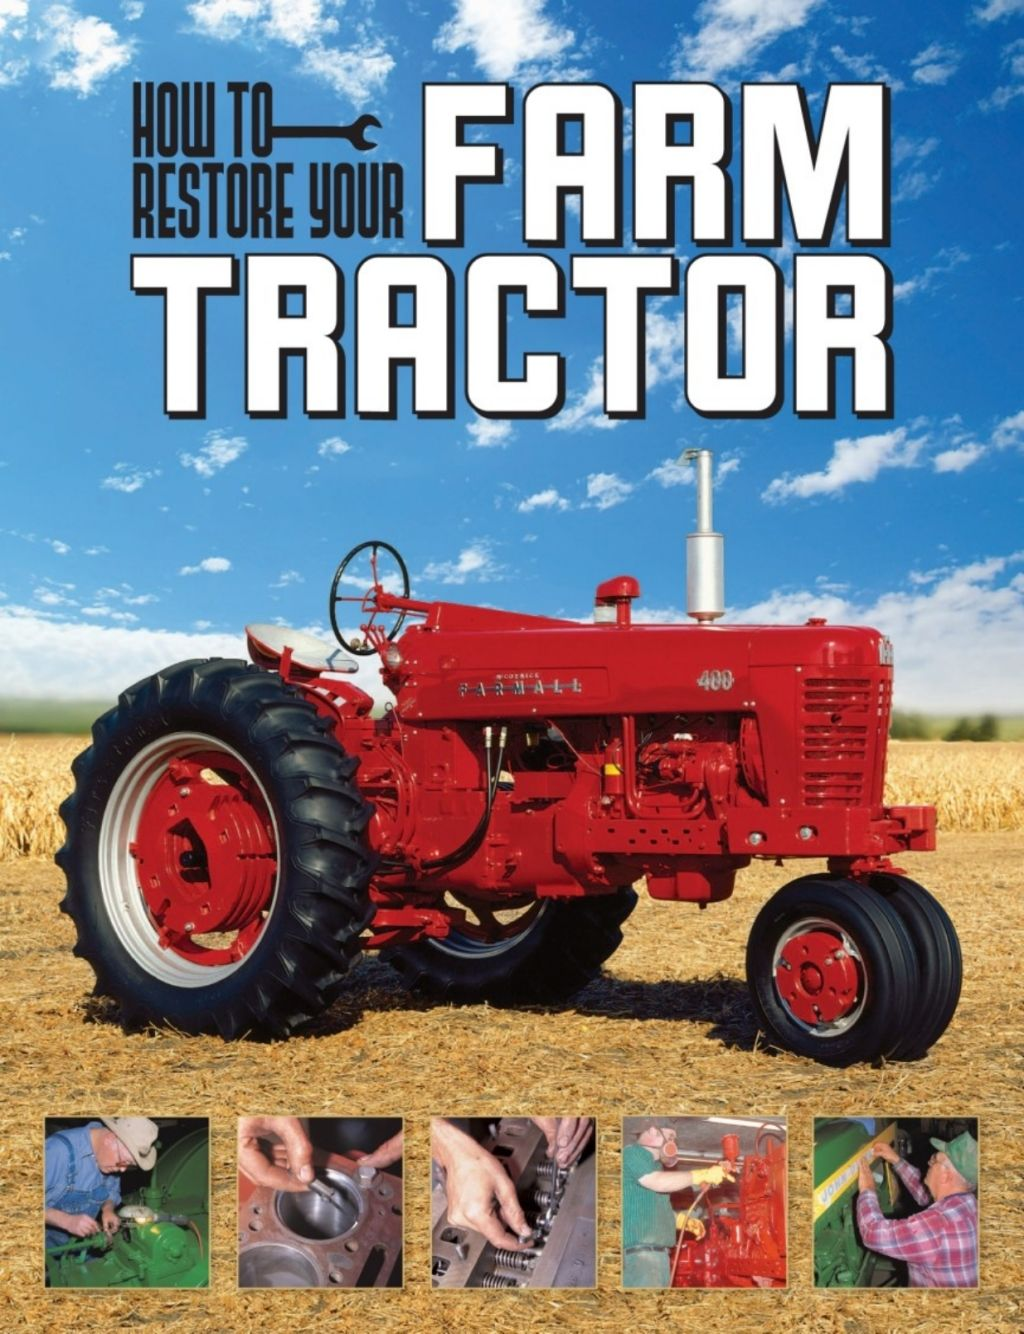 How to restore your farm tractor ebook with images